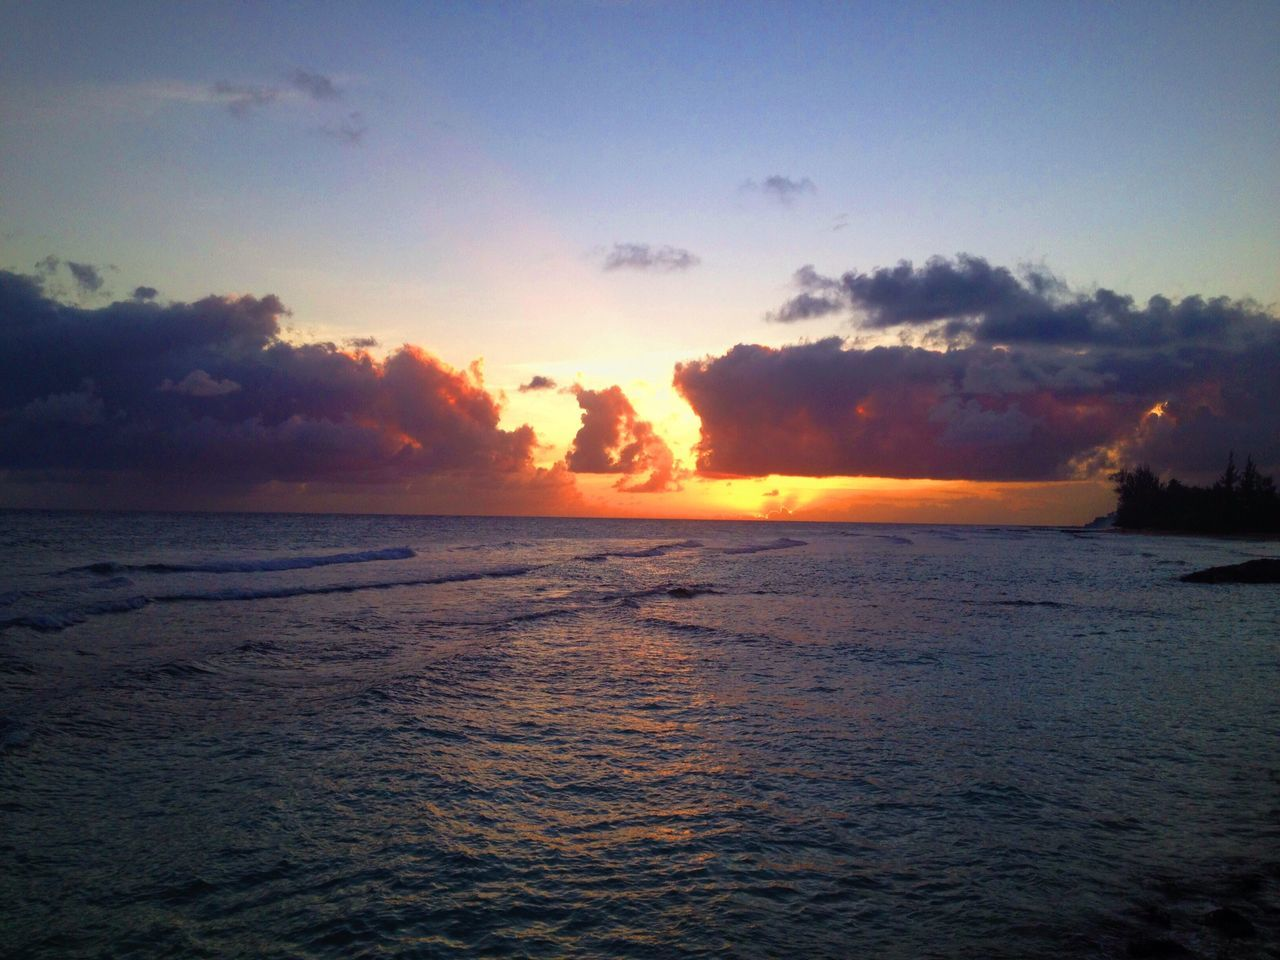 Sunset Sunset_collection Ocean Beach Beachphotography Taking Photos Clouds Clouds And Sky IPhoneography Eye4photography